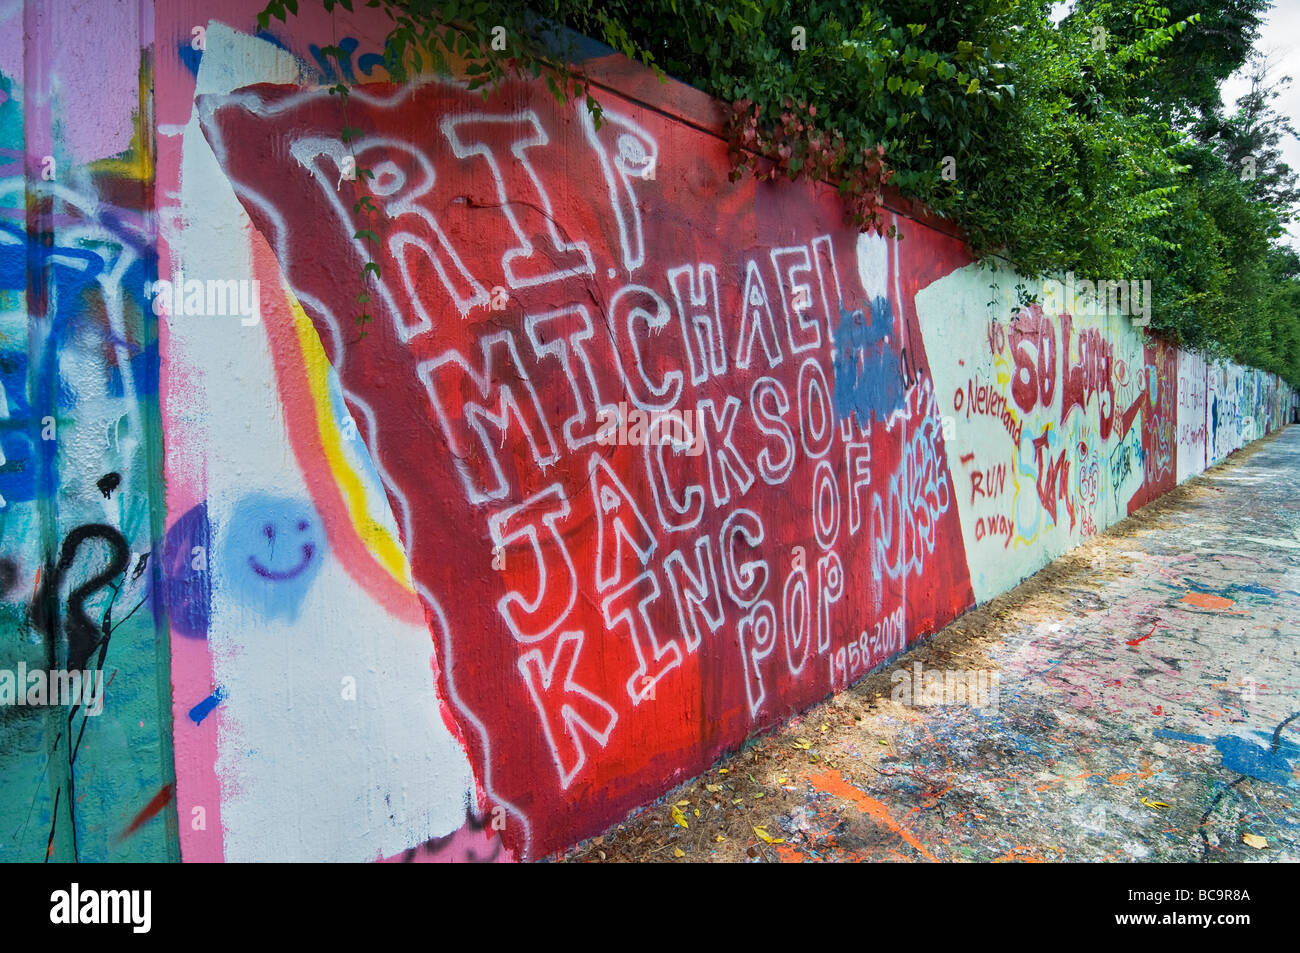 Tribute to Michael Jackson after his death along Gainesville Florida's Graffiti Wall - Stock Image